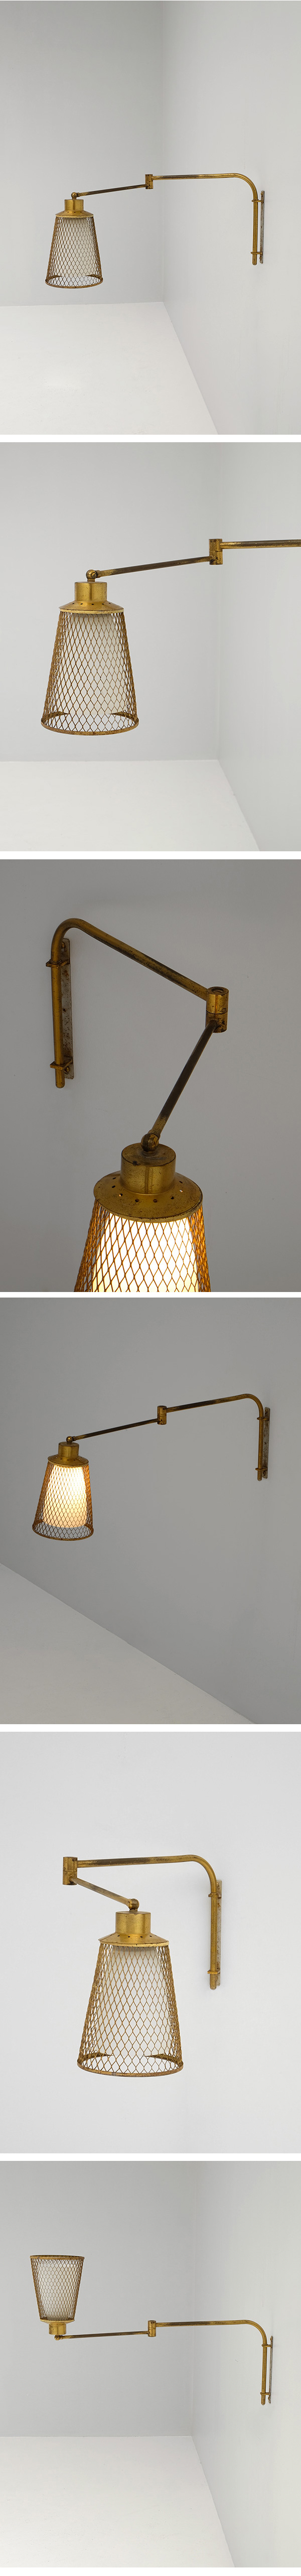 Fifties, swivel, reading, wall lamp